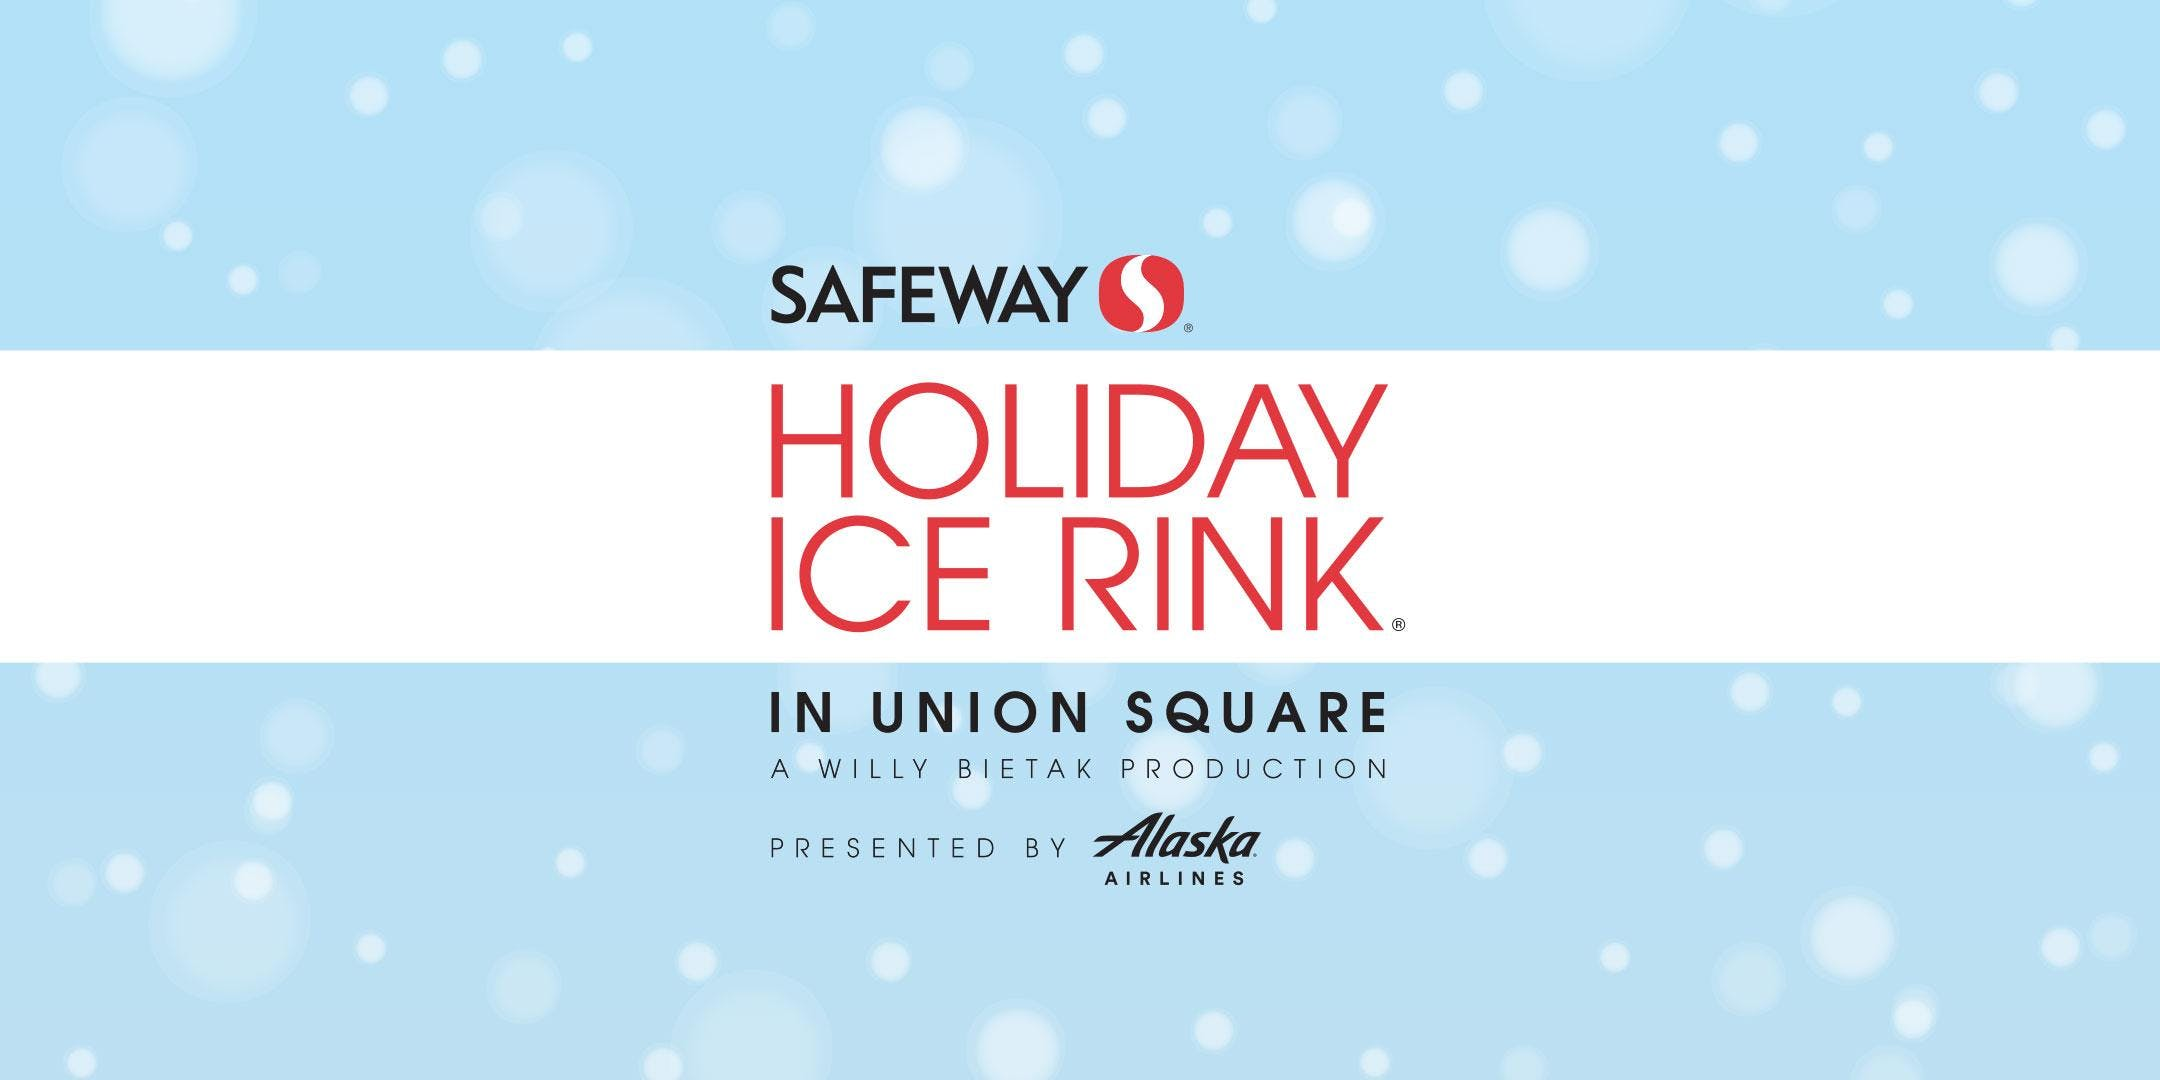 Safeway Holiday Ice Rink in Union Square 2019